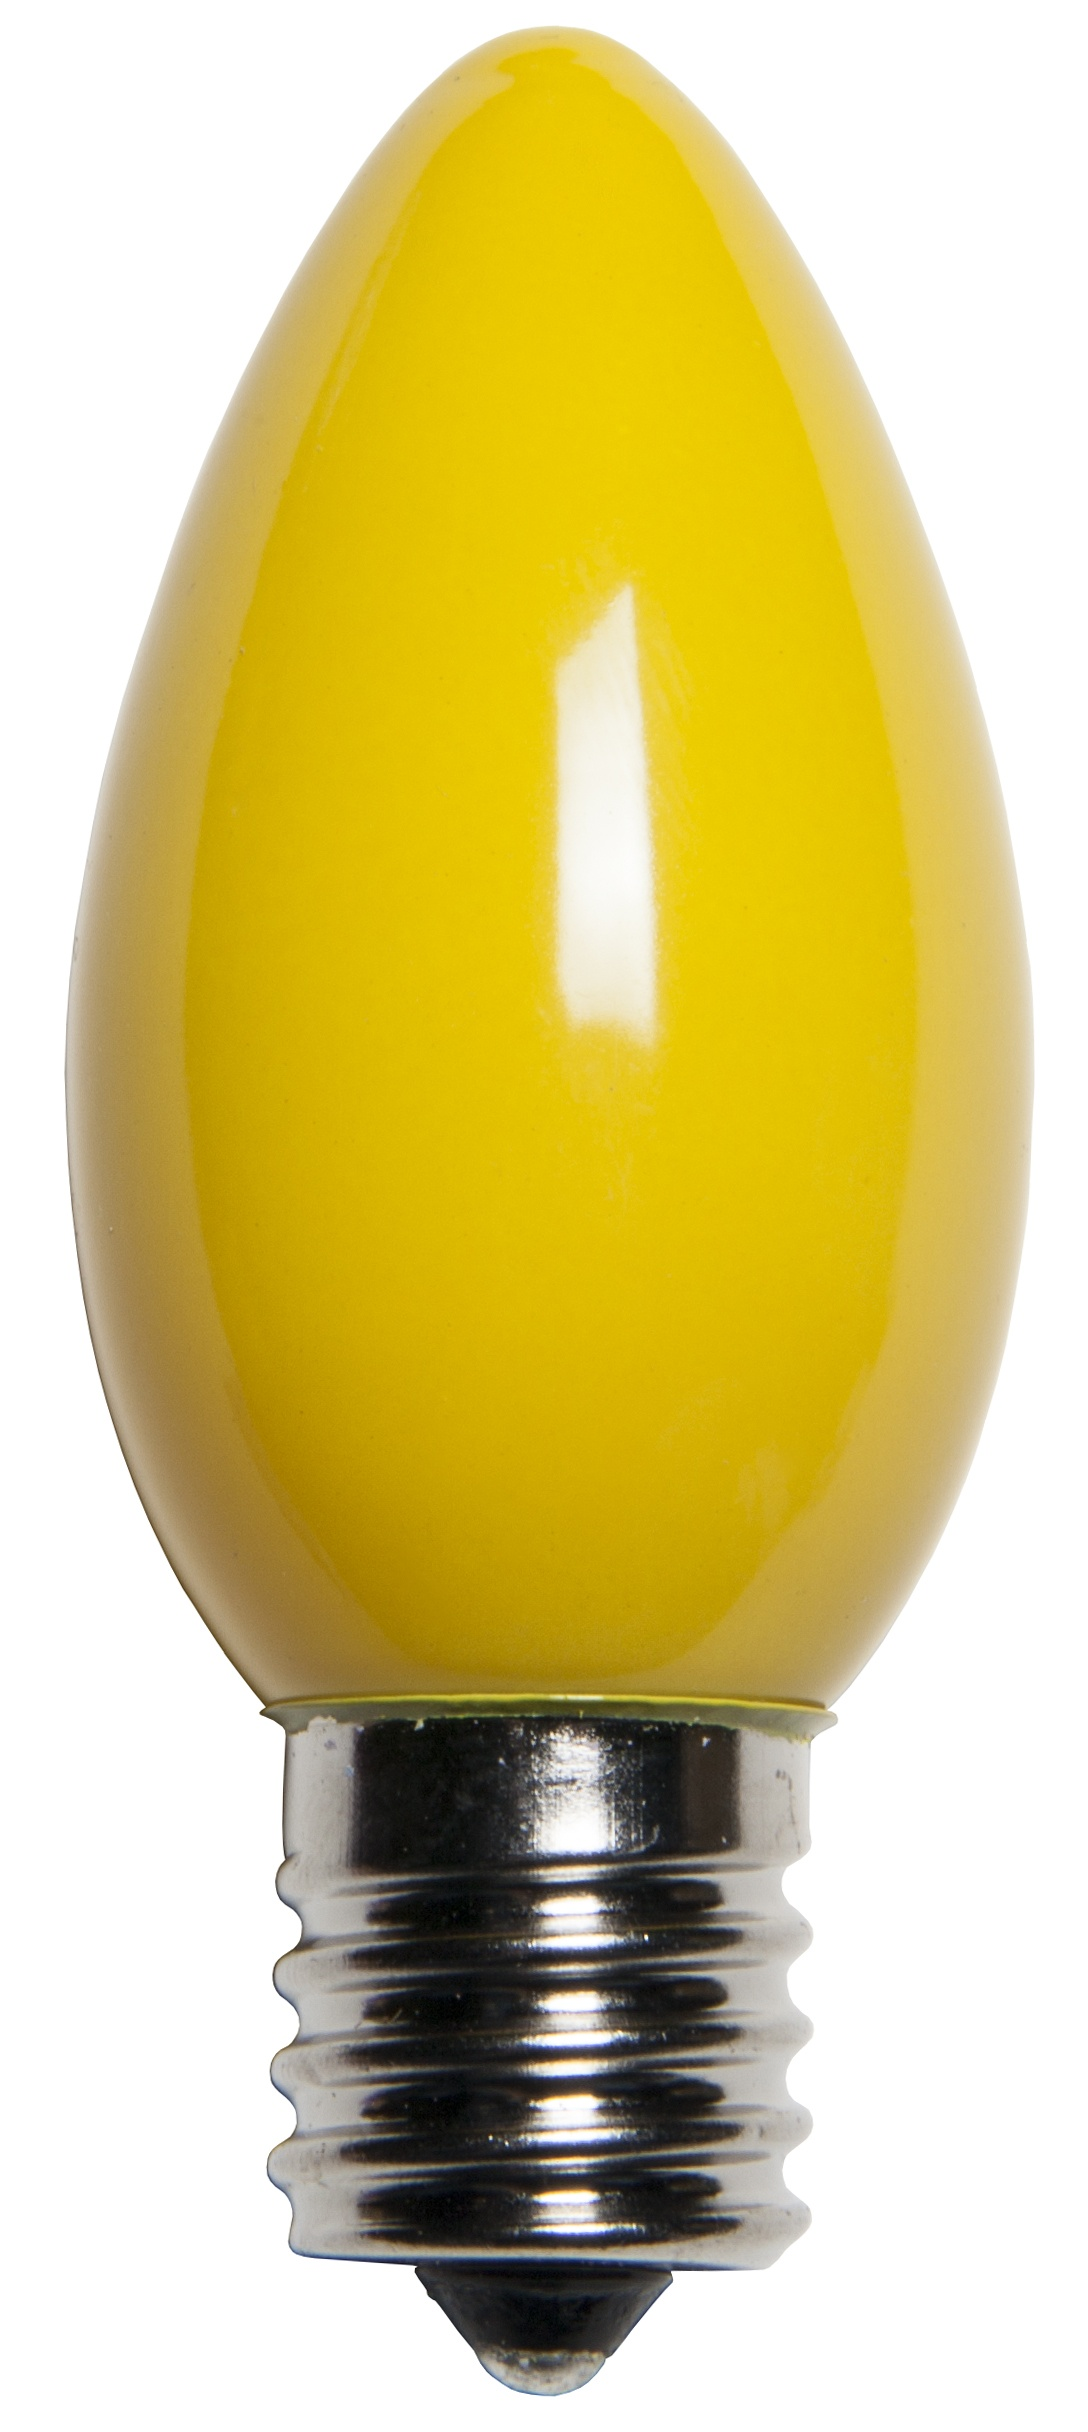 c9 christmas light bulb c9 yellow christmas light bulbs opaque. Black Bedroom Furniture Sets. Home Design Ideas